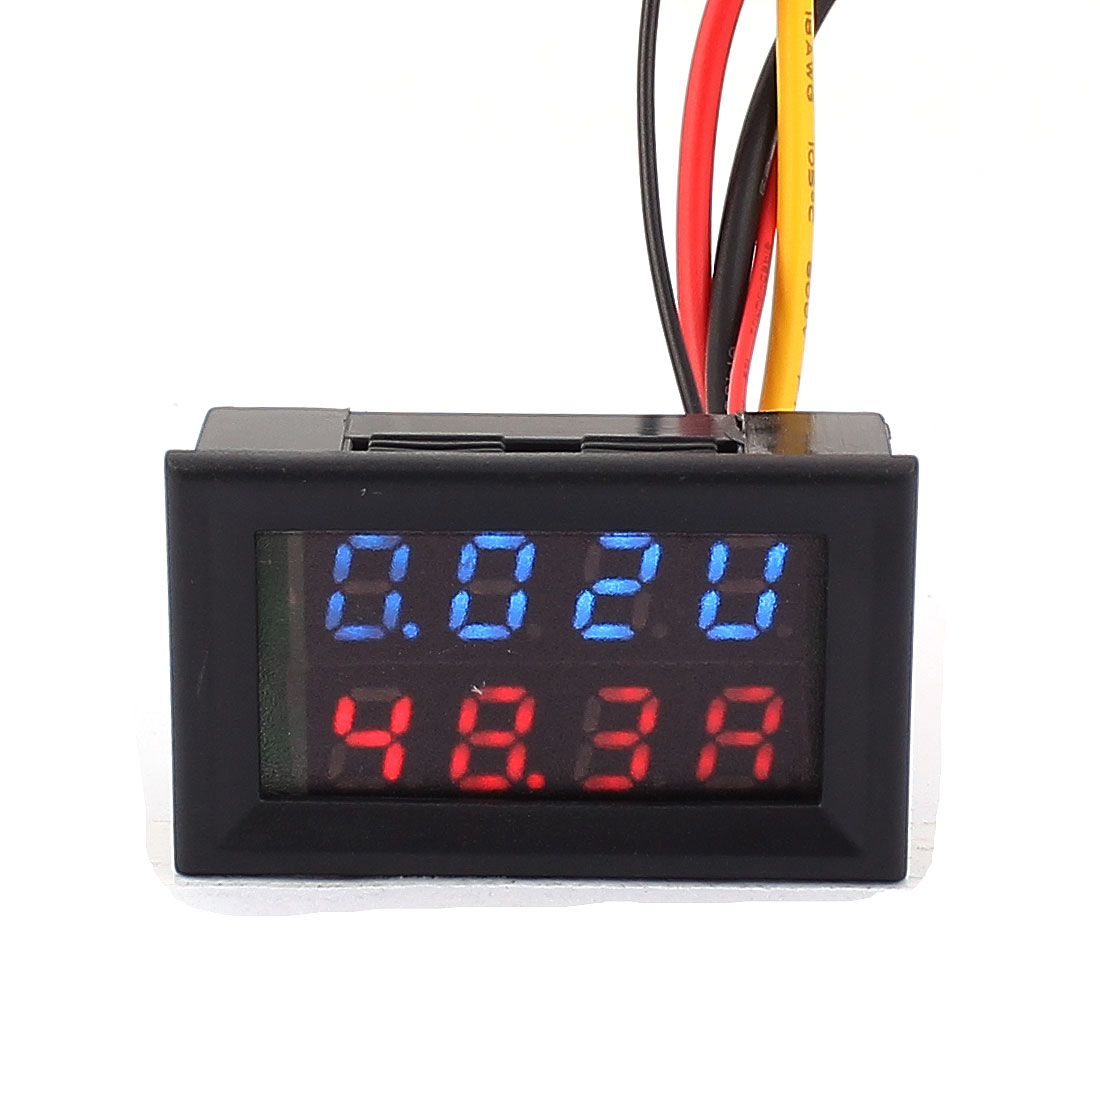 DC 0-100V 0-100A Blue Red LED Dual Digital Display Panel Voltmeter Ammeter Meter